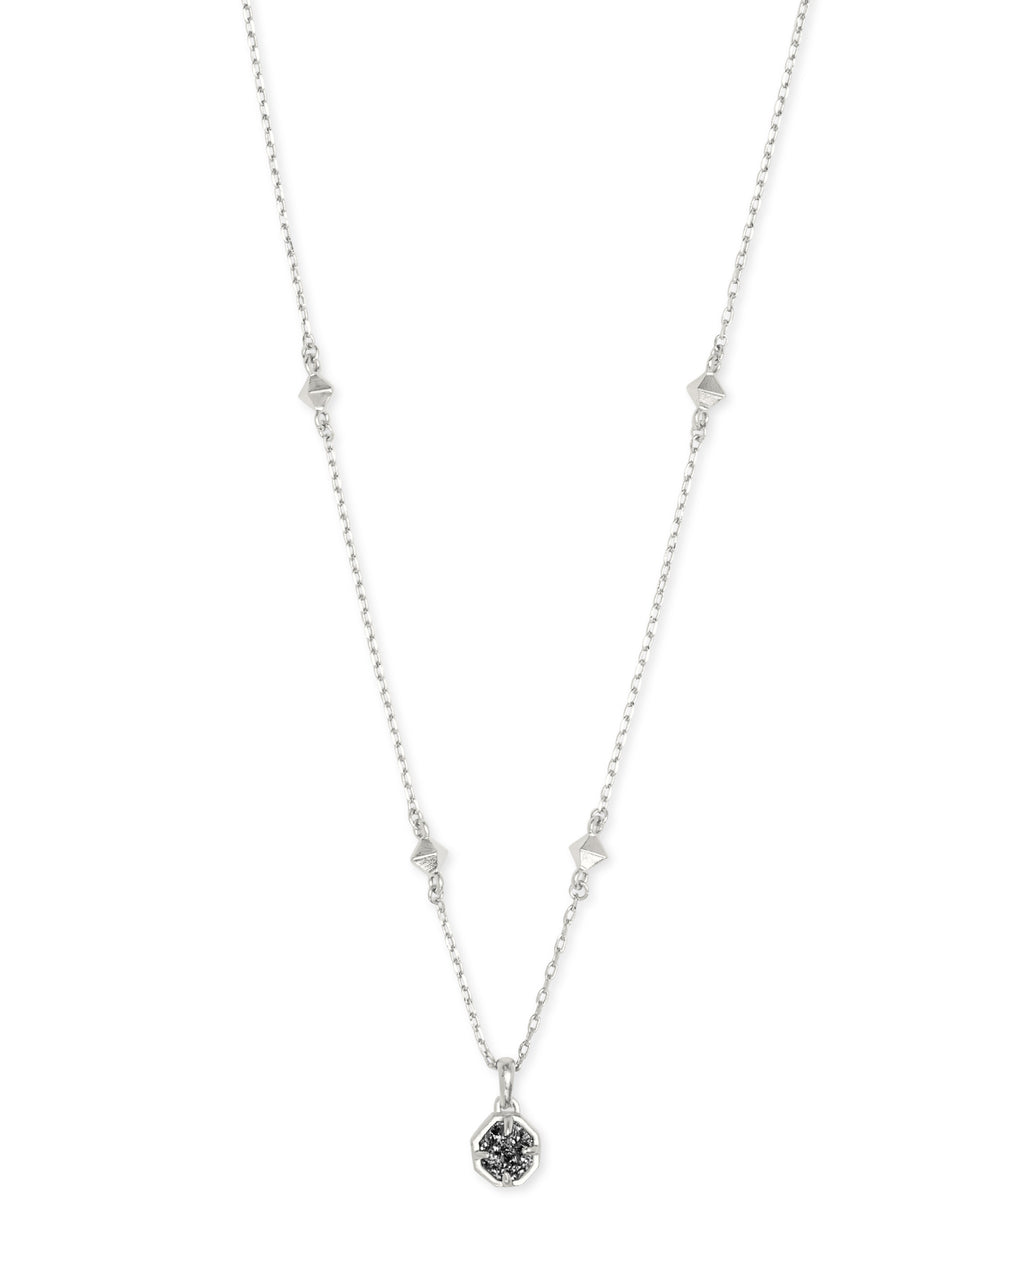 Kendra Scott Nola Short Pendant Necklace - Rhod Platinum Drusy